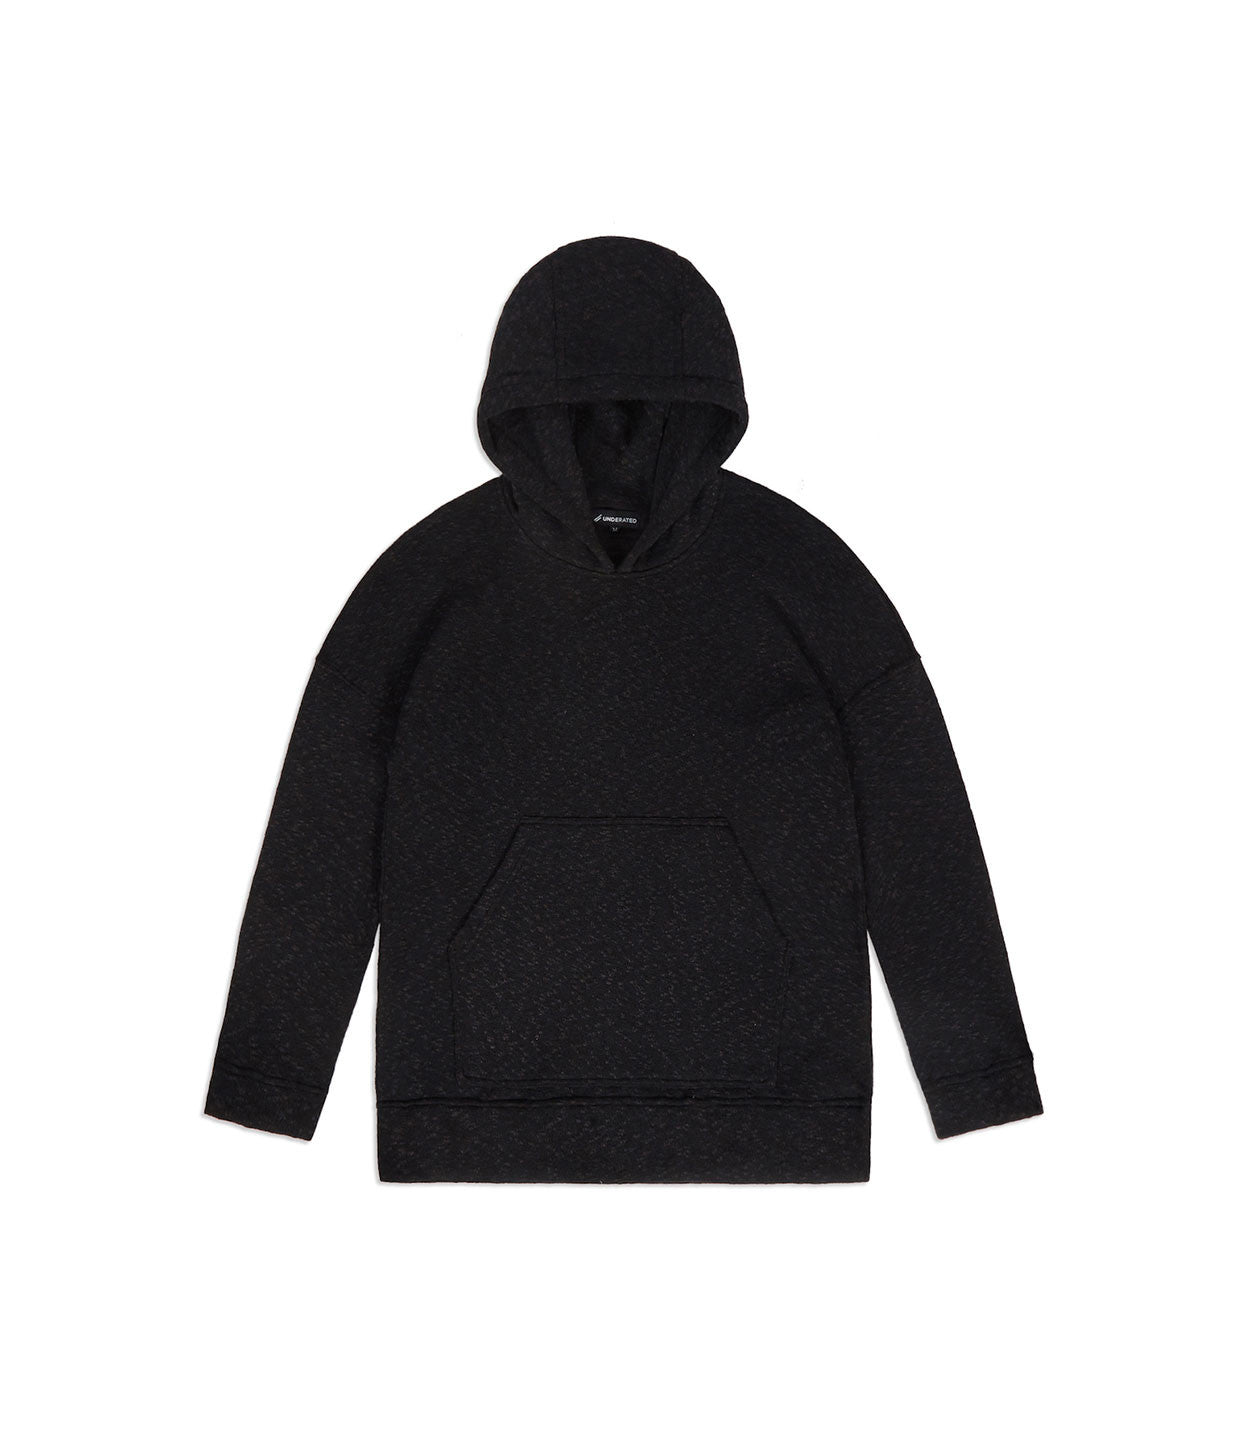 HD378 Oversized Knit Hoody - Charcoal/Black - underated london - underatedco - 7